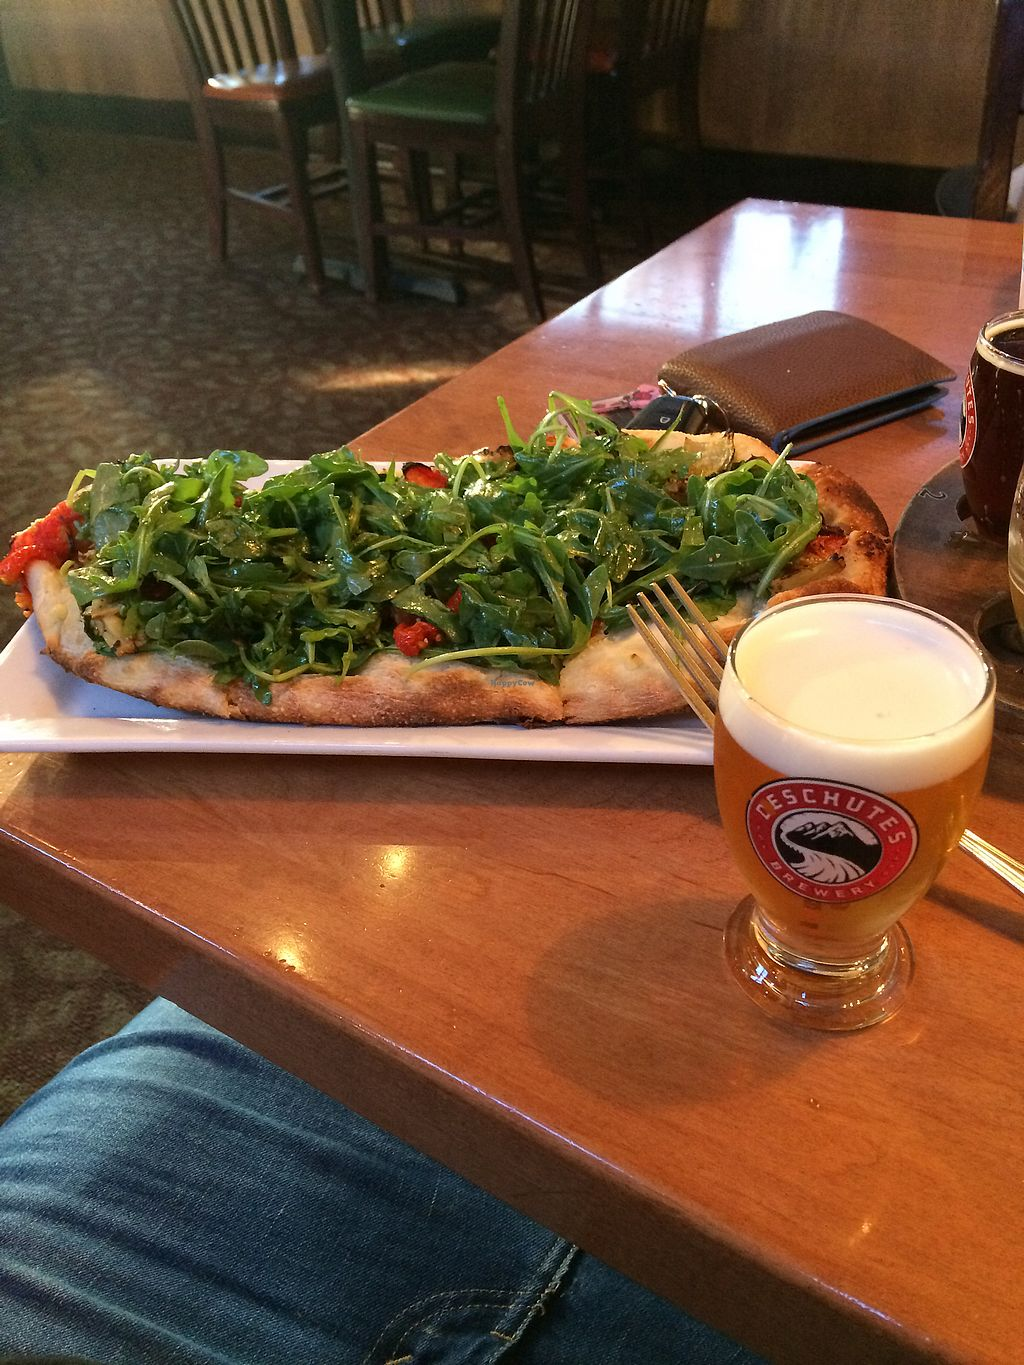 """Photo of Deschutes Brewery & Public House  by <a href=""""/members/profile/giant%20bunnie"""">giant bunnie</a> <br/>Vegan flat bred pizza  <br/> September 28, 2017  - <a href='/contact/abuse/image/101797/309237'>Report</a>"""